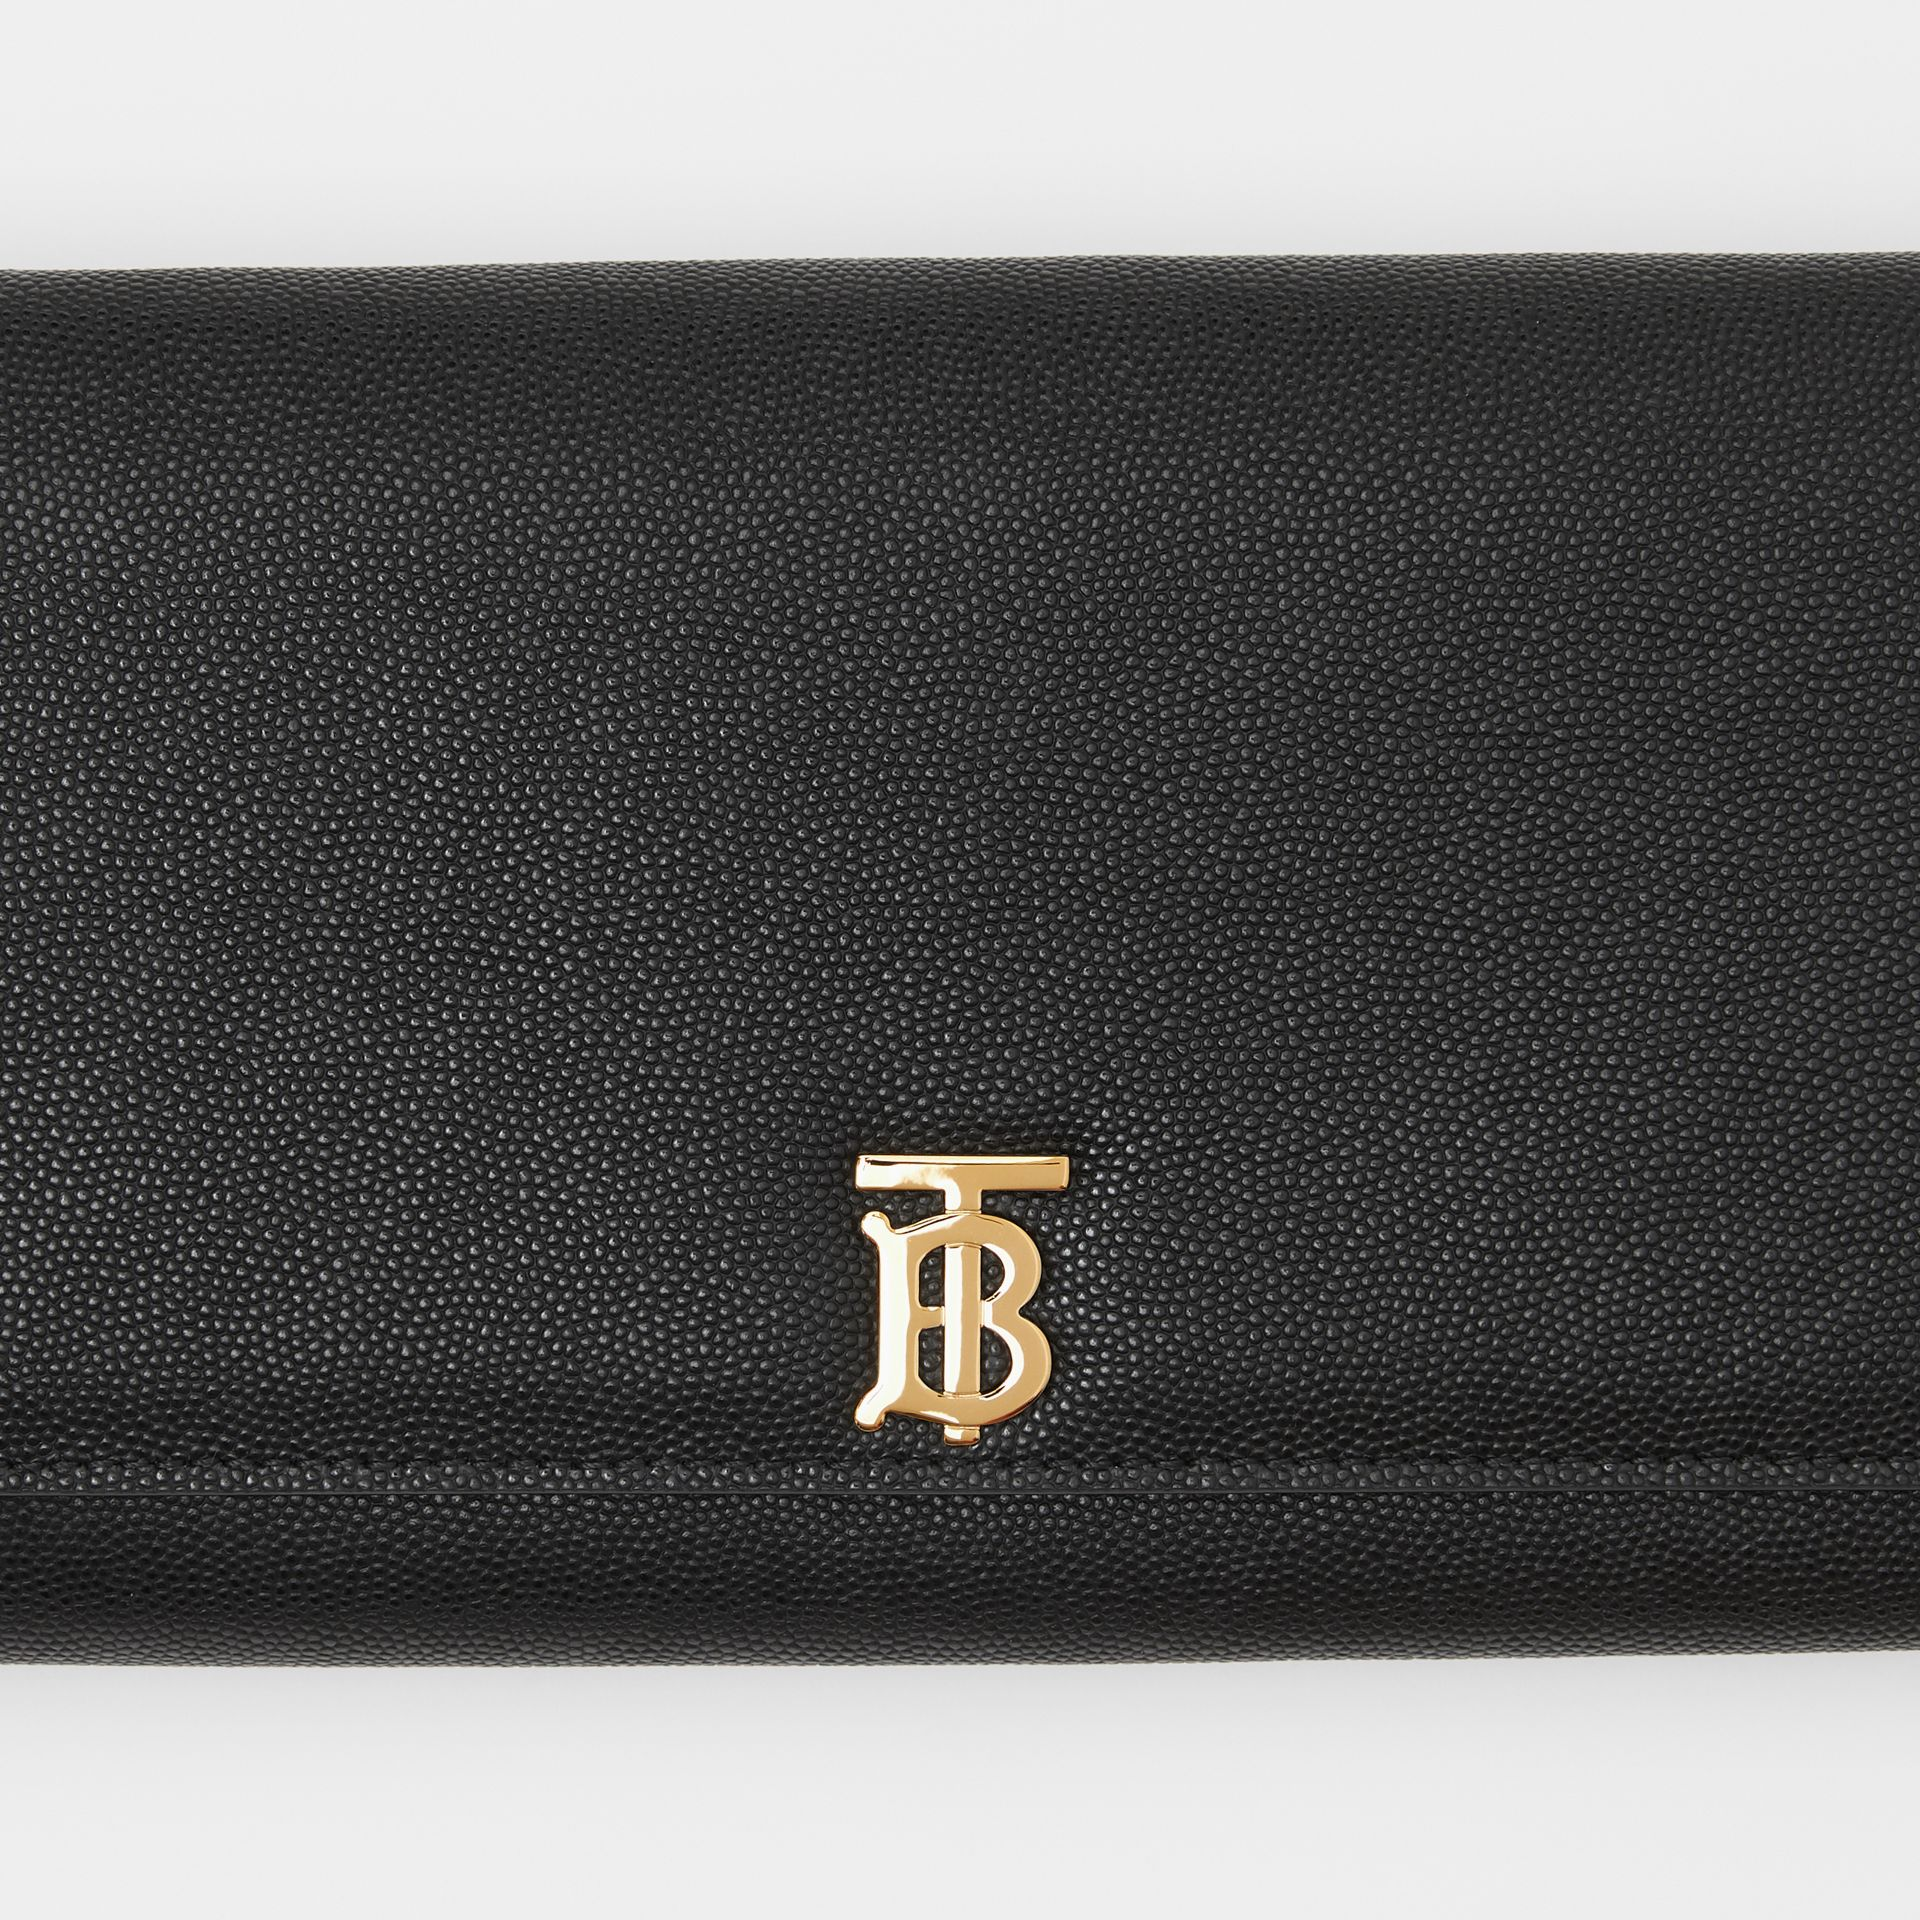 Monogram Motif Leather Wallet with Detachable Strap in Black - Women | Burberry Singapore - gallery image 1